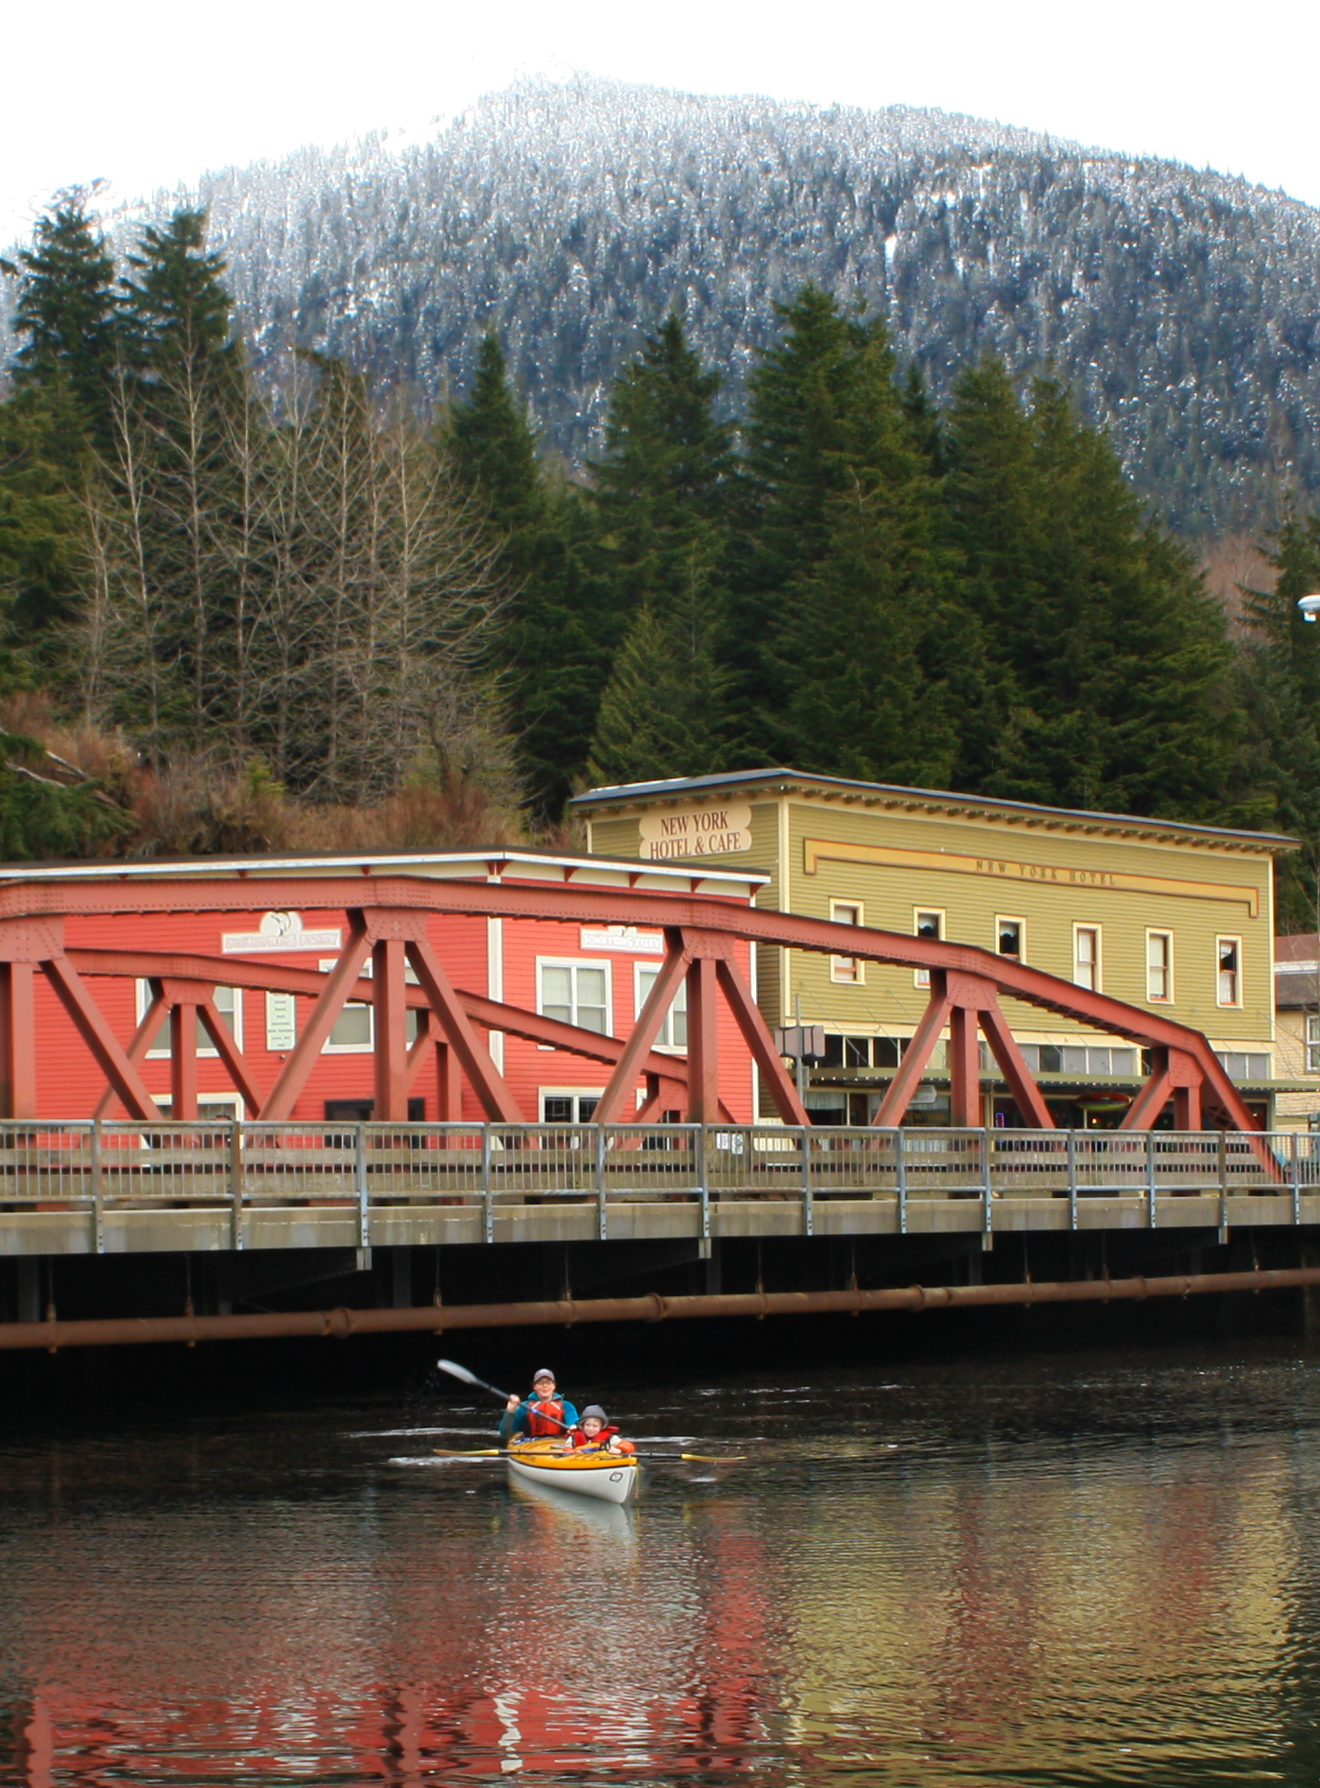 Snow on the mountains and high tide at the Creek Street Bridge in Ketchikan, Alaska